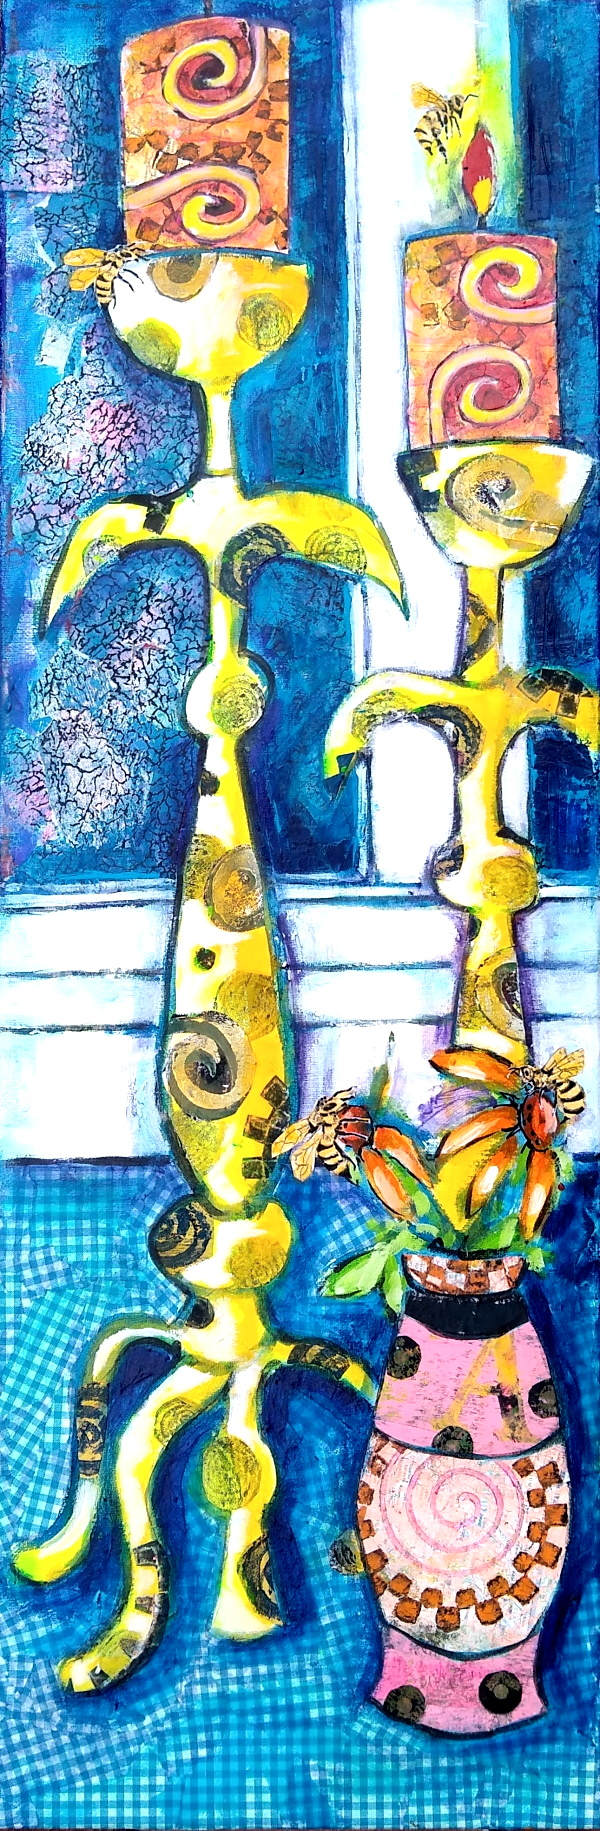 This is a painting of candlesticks, a vase with zinnias, and some bees. In the distance is a windowpane.